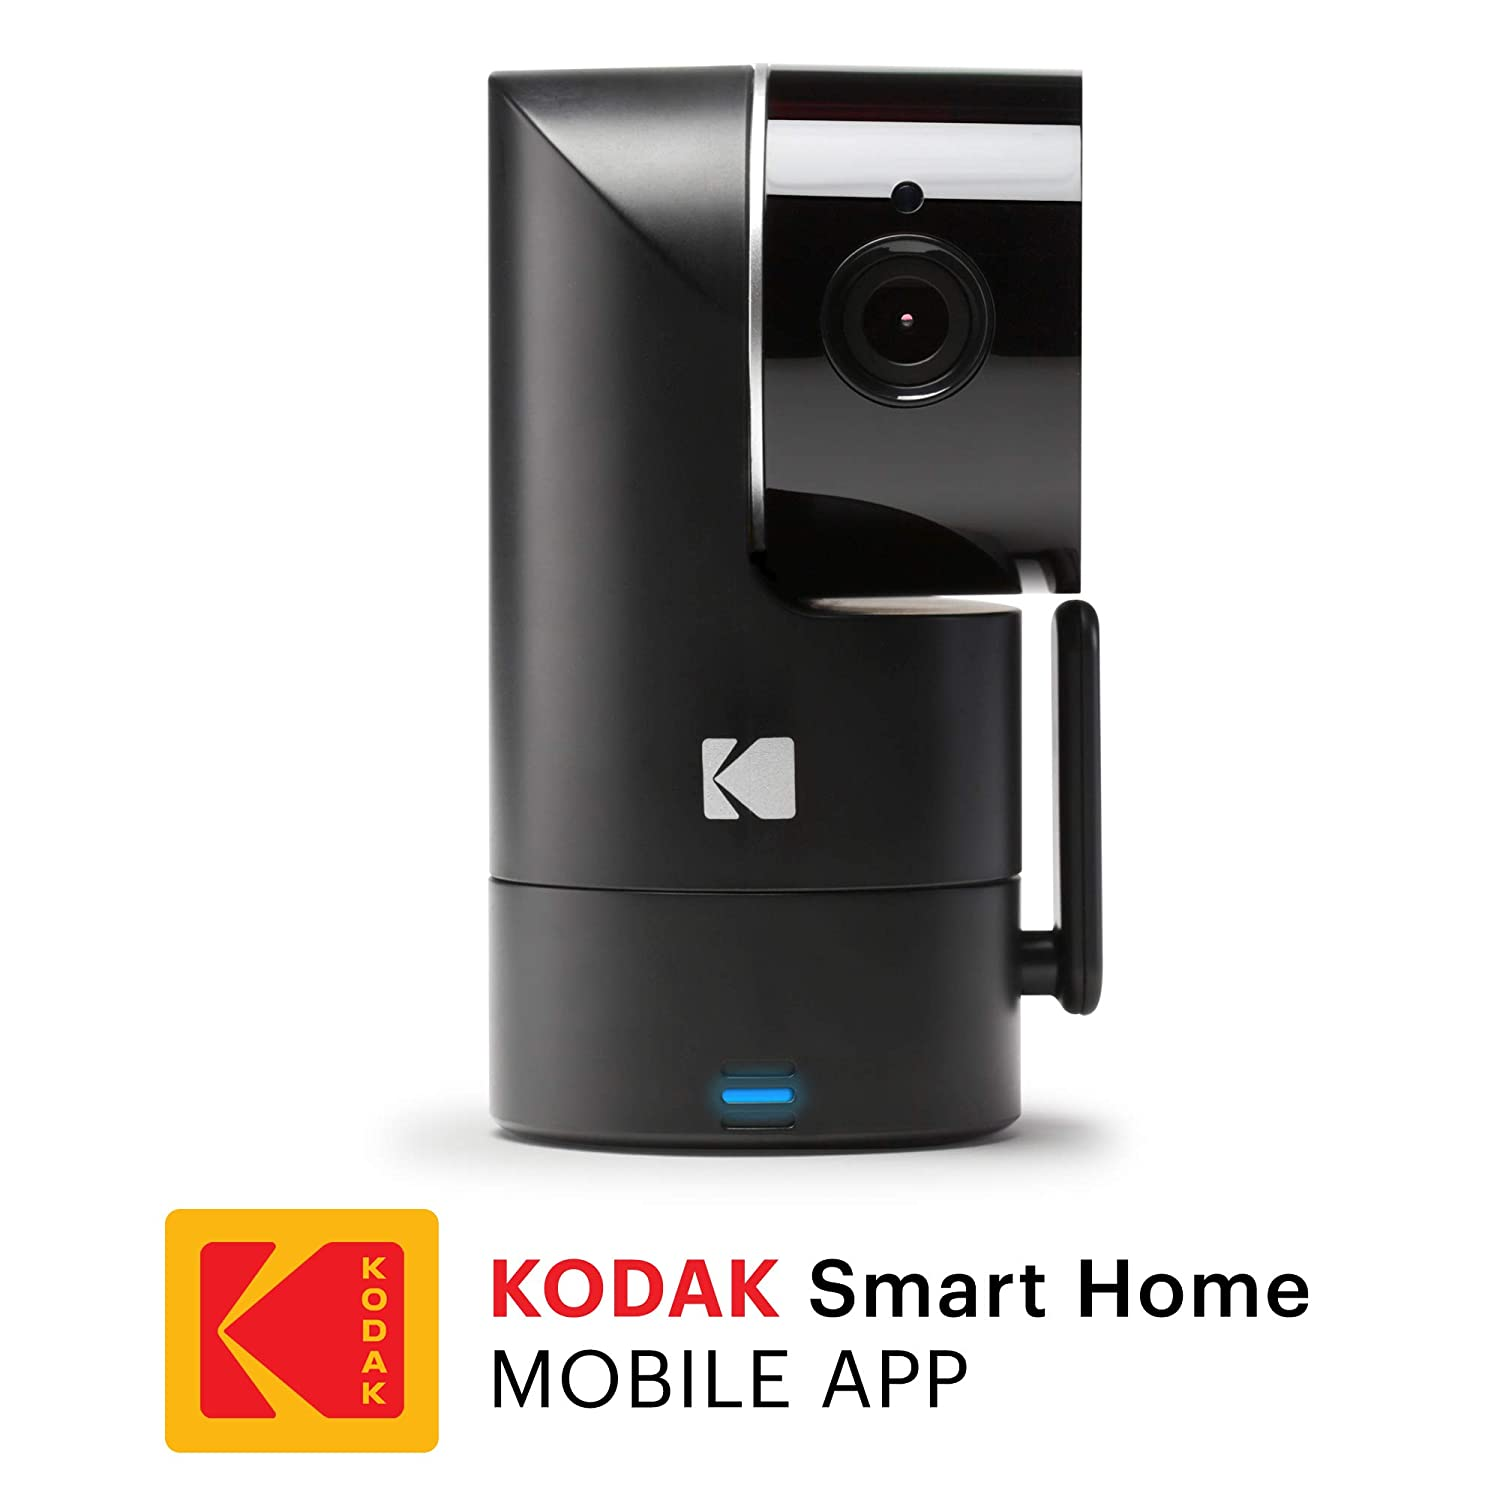 KODAK Cherish F685 Home Security Camera with Mobile App - Full-HD Wireless  Security Camera System with Infrared Night-Vision, Battery, Tilt, Pan, ...